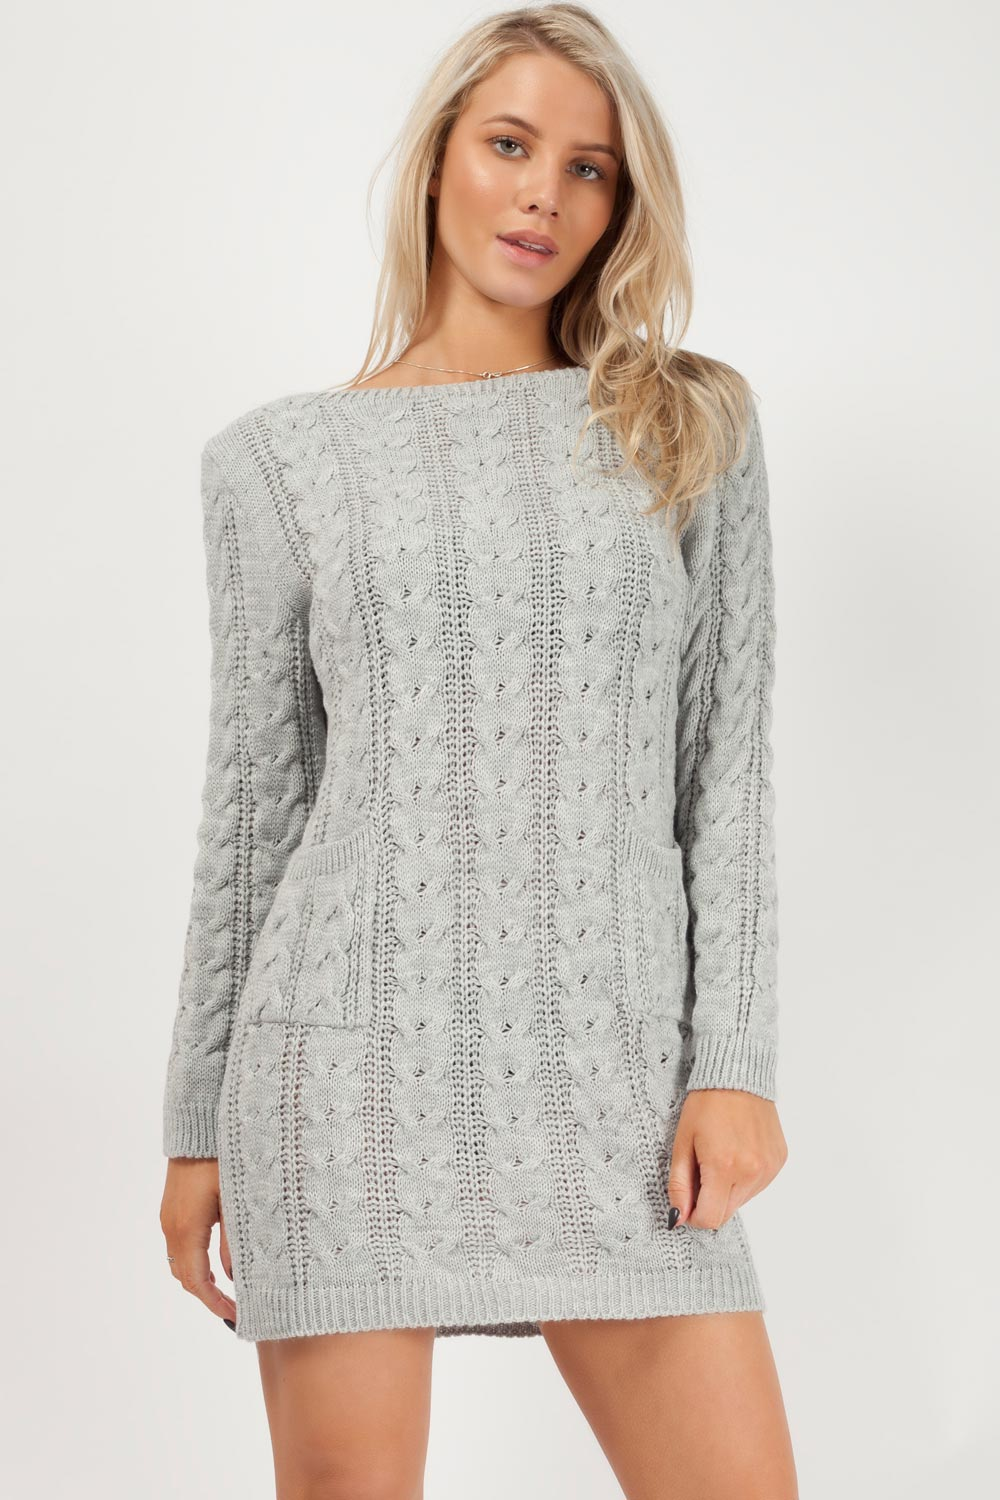 grey knitted dress uk